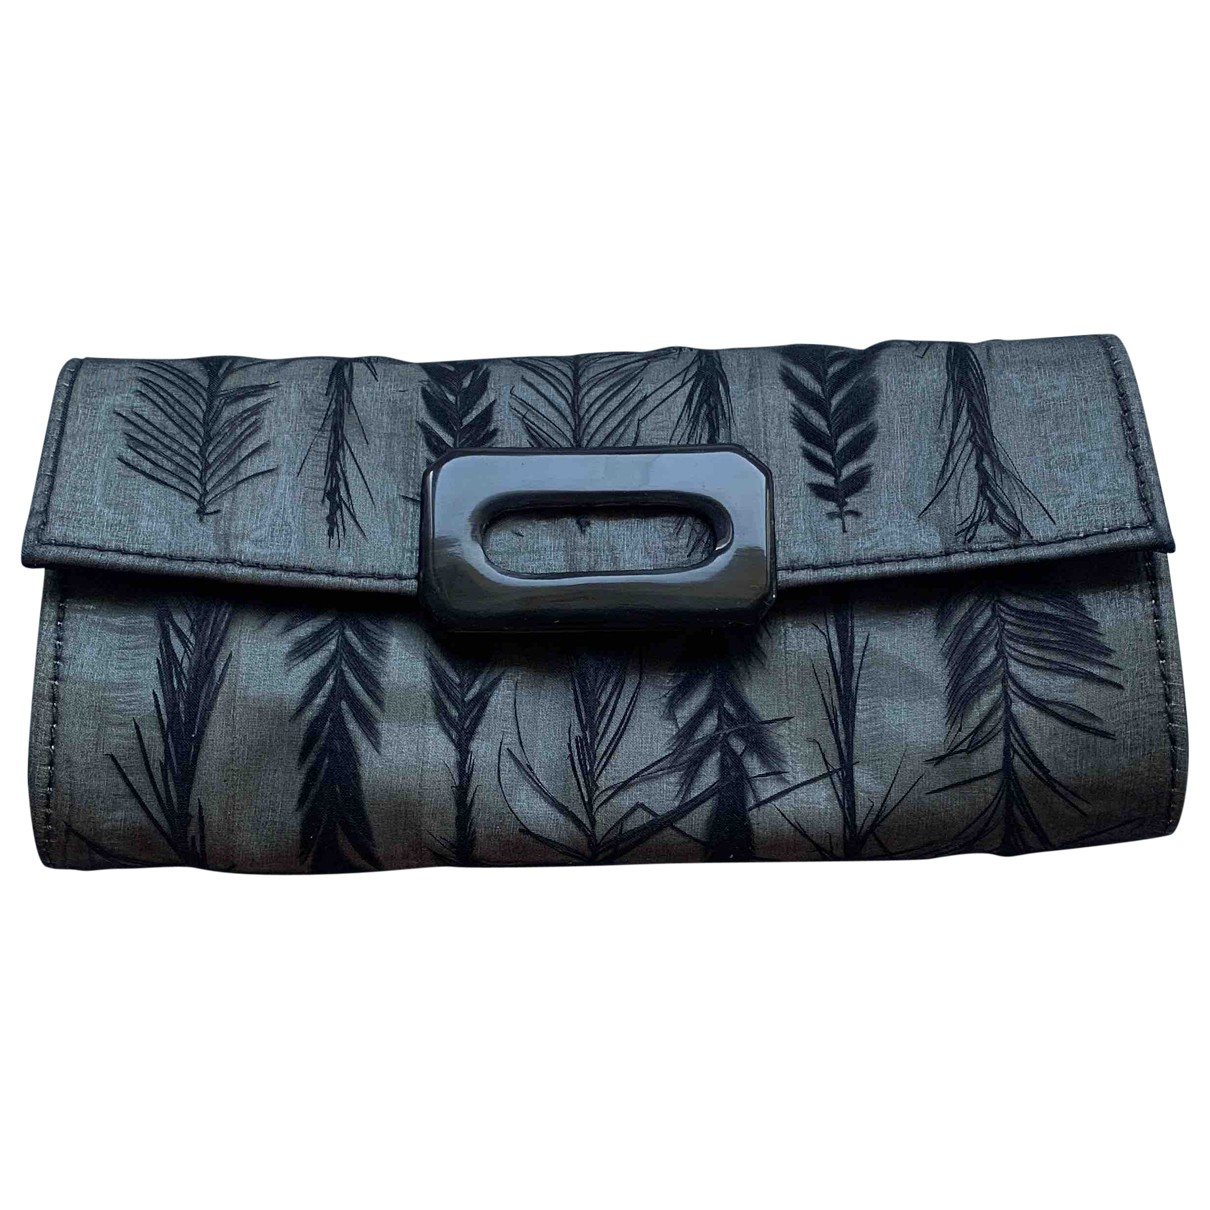 R+y Augousti \N Grey Silk Clutch bag for Women \N